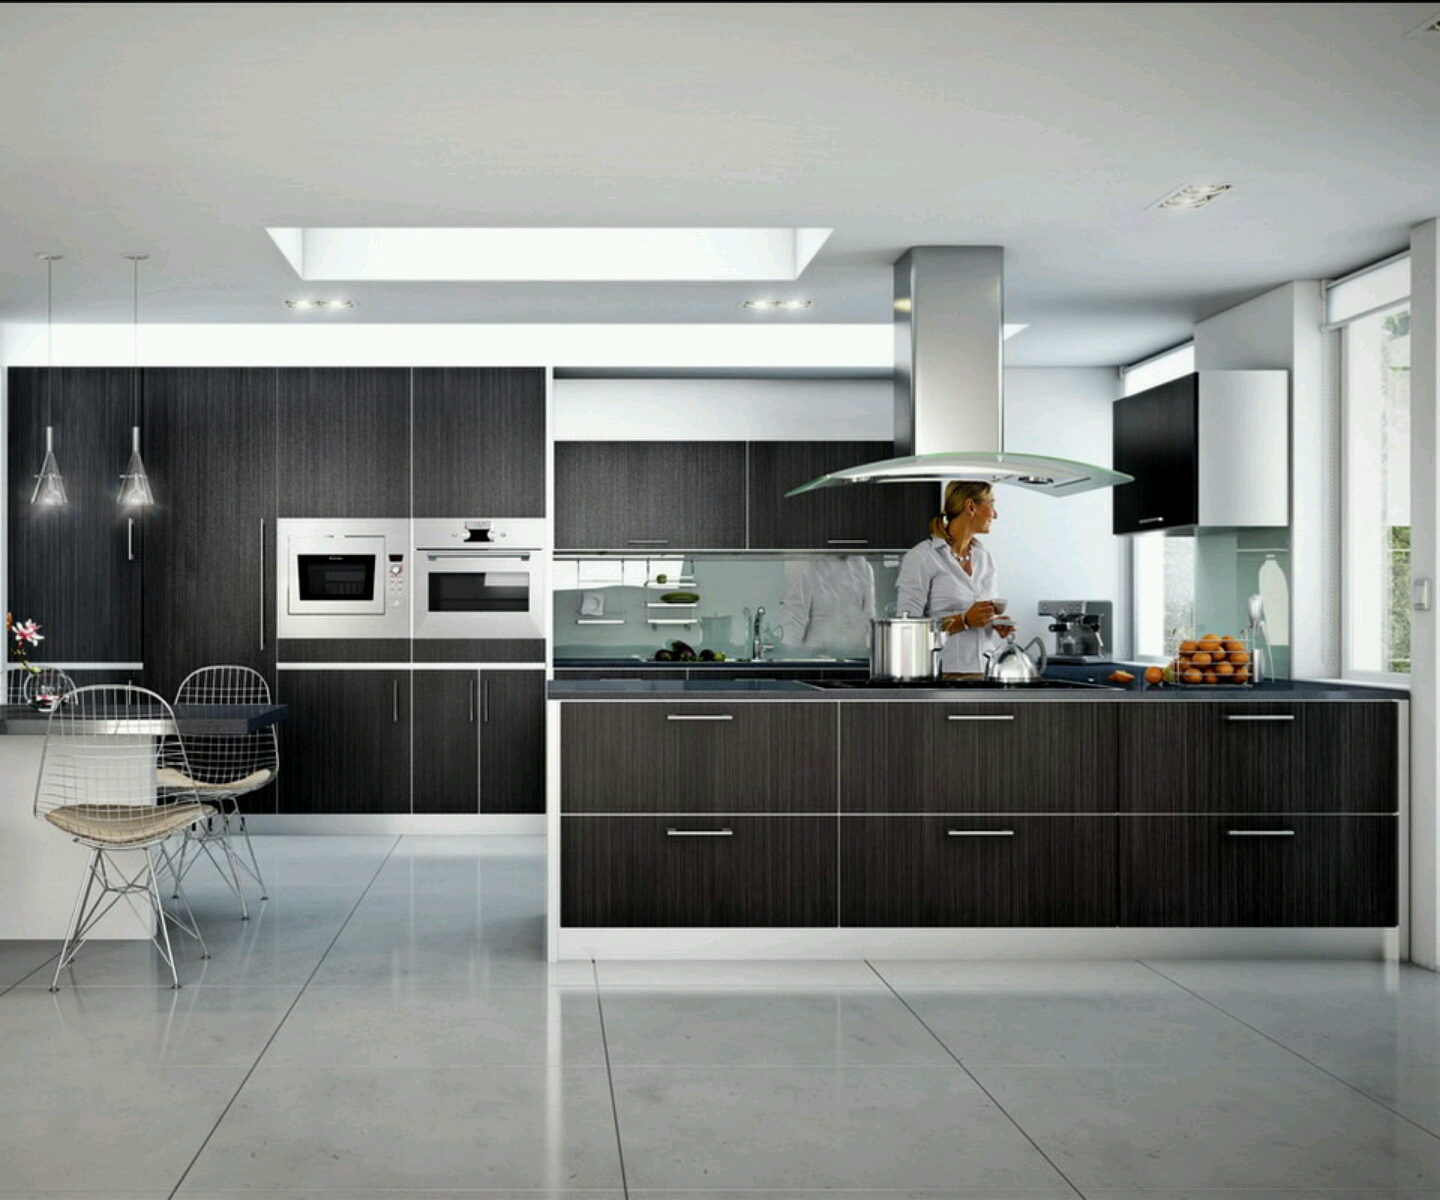 Modern homes ultra modern kitchen designs ideas new for New home kitchen designs